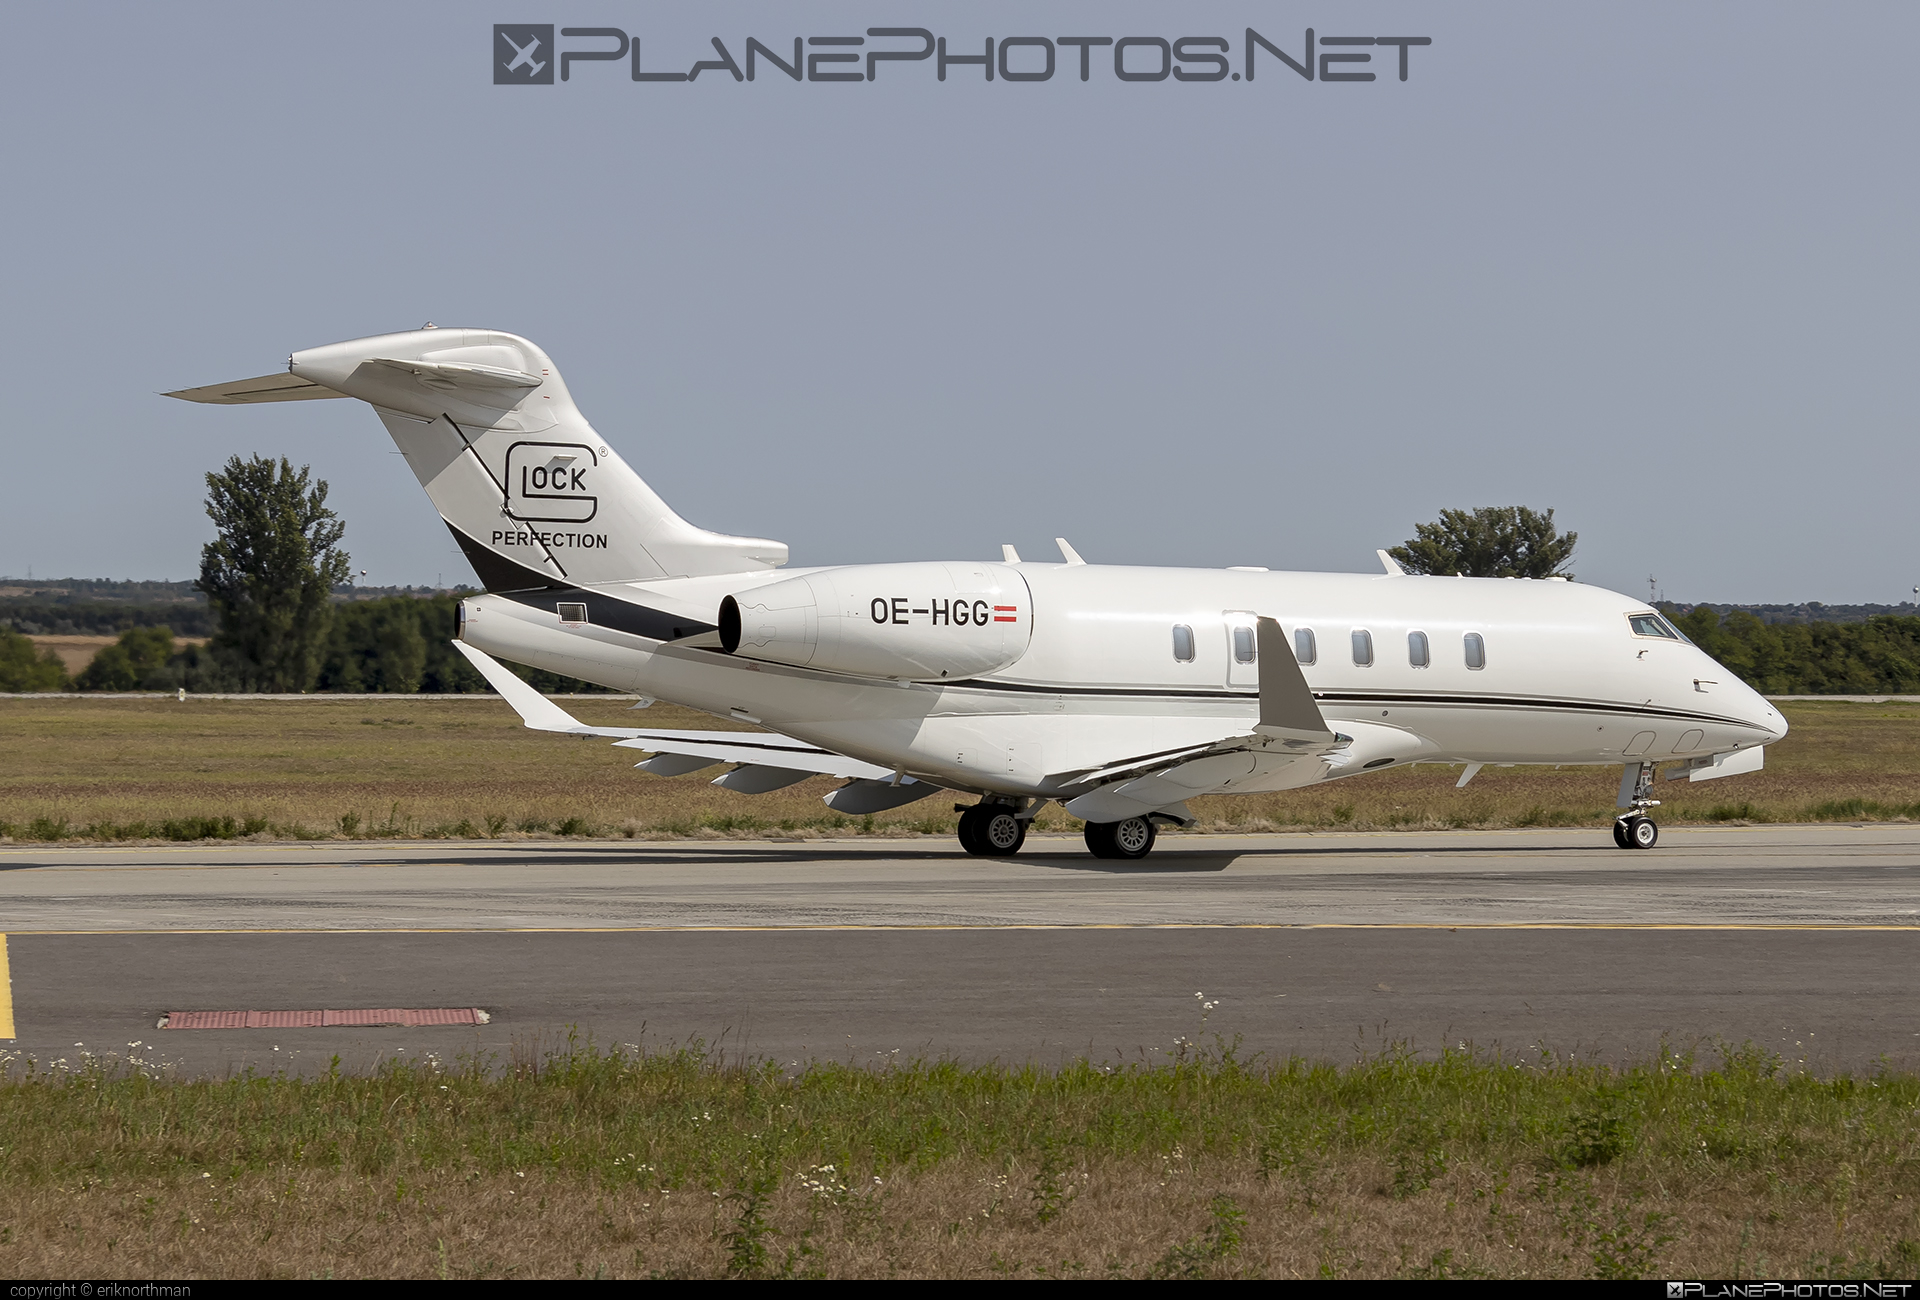 Bombardier Challenger 350 (BD-100-1A10) - OE-HGG operated by Glock Aviation #bd1001a10 #bombardier #challenger350 #glockaviation